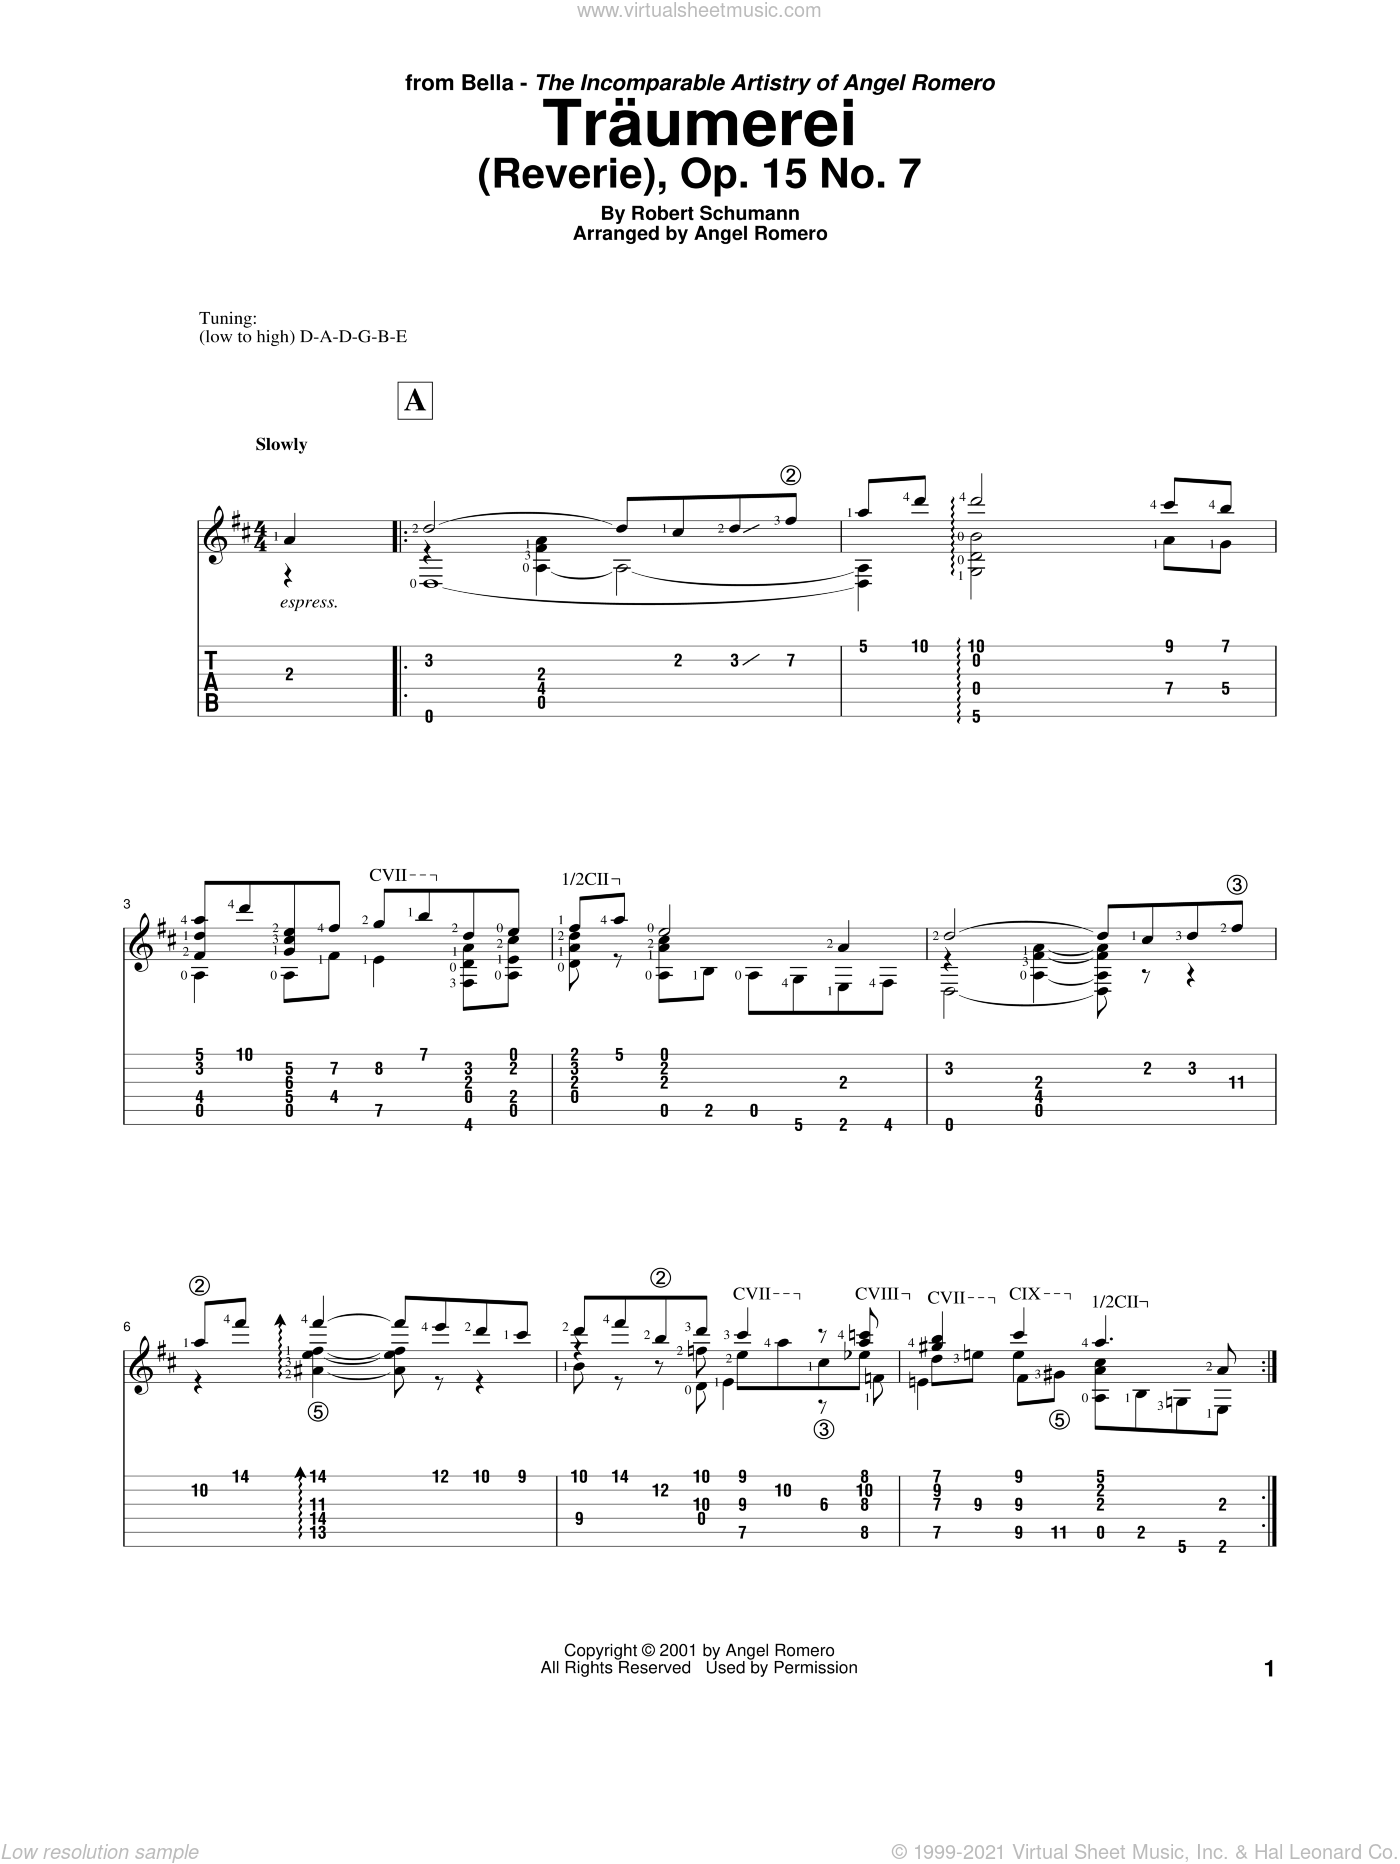 Traumerei (Reverie), Op. 15 No. 7 sheet music for guitar solo by Angel Romero and Robert Schumann, classical score, intermediate skill level